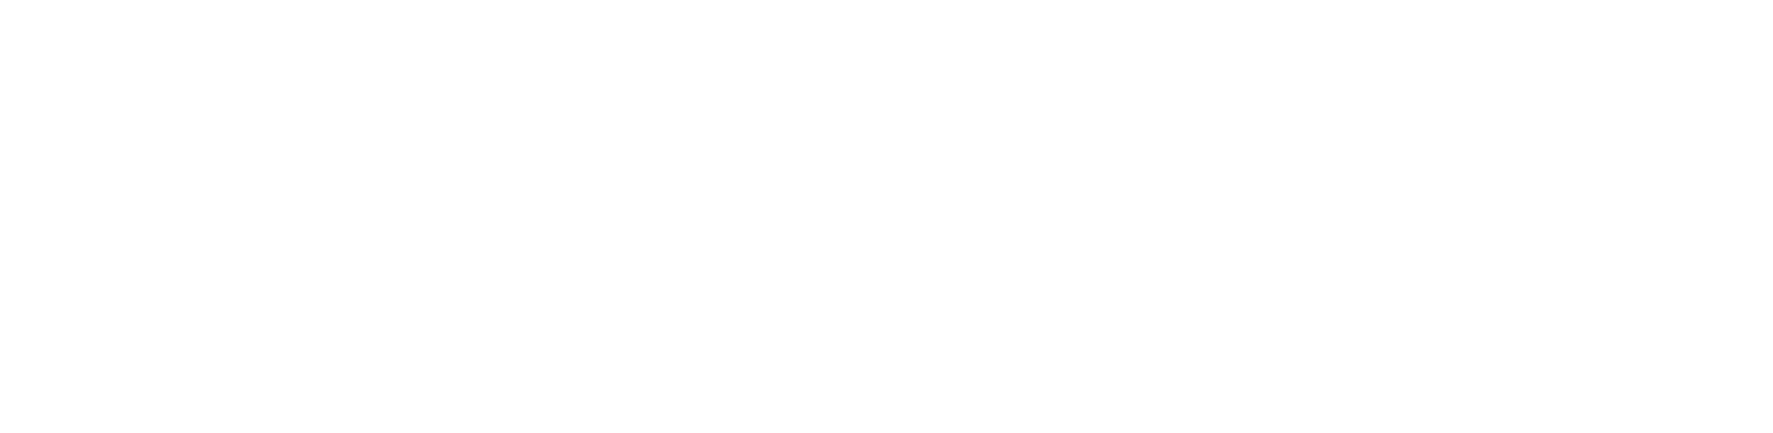 Institute for Social Behavioral and Economic Research - UC Santa Barbara